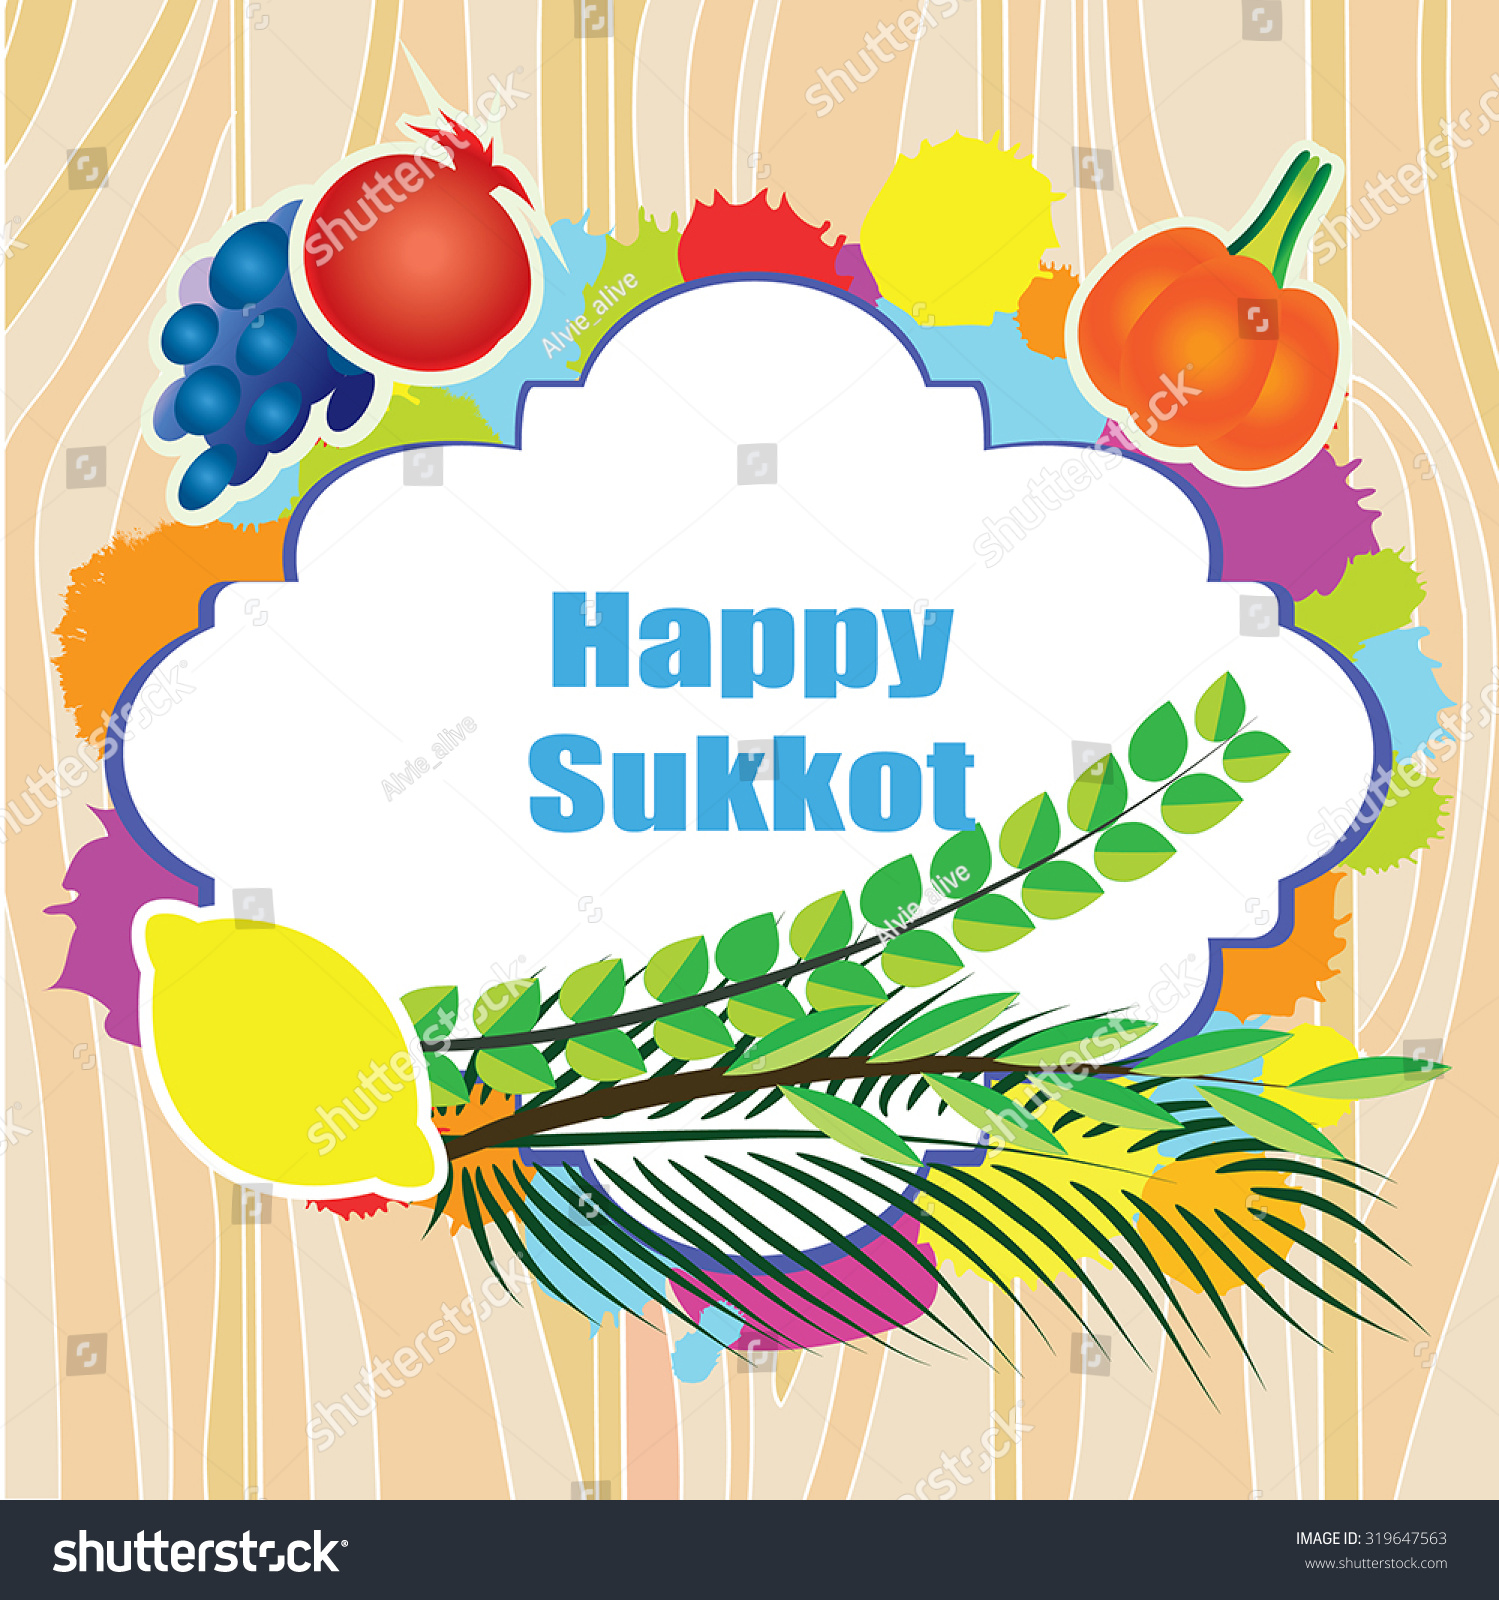 Sukkot Holiday Greeting Card Design Flat Stock Vector 319647563